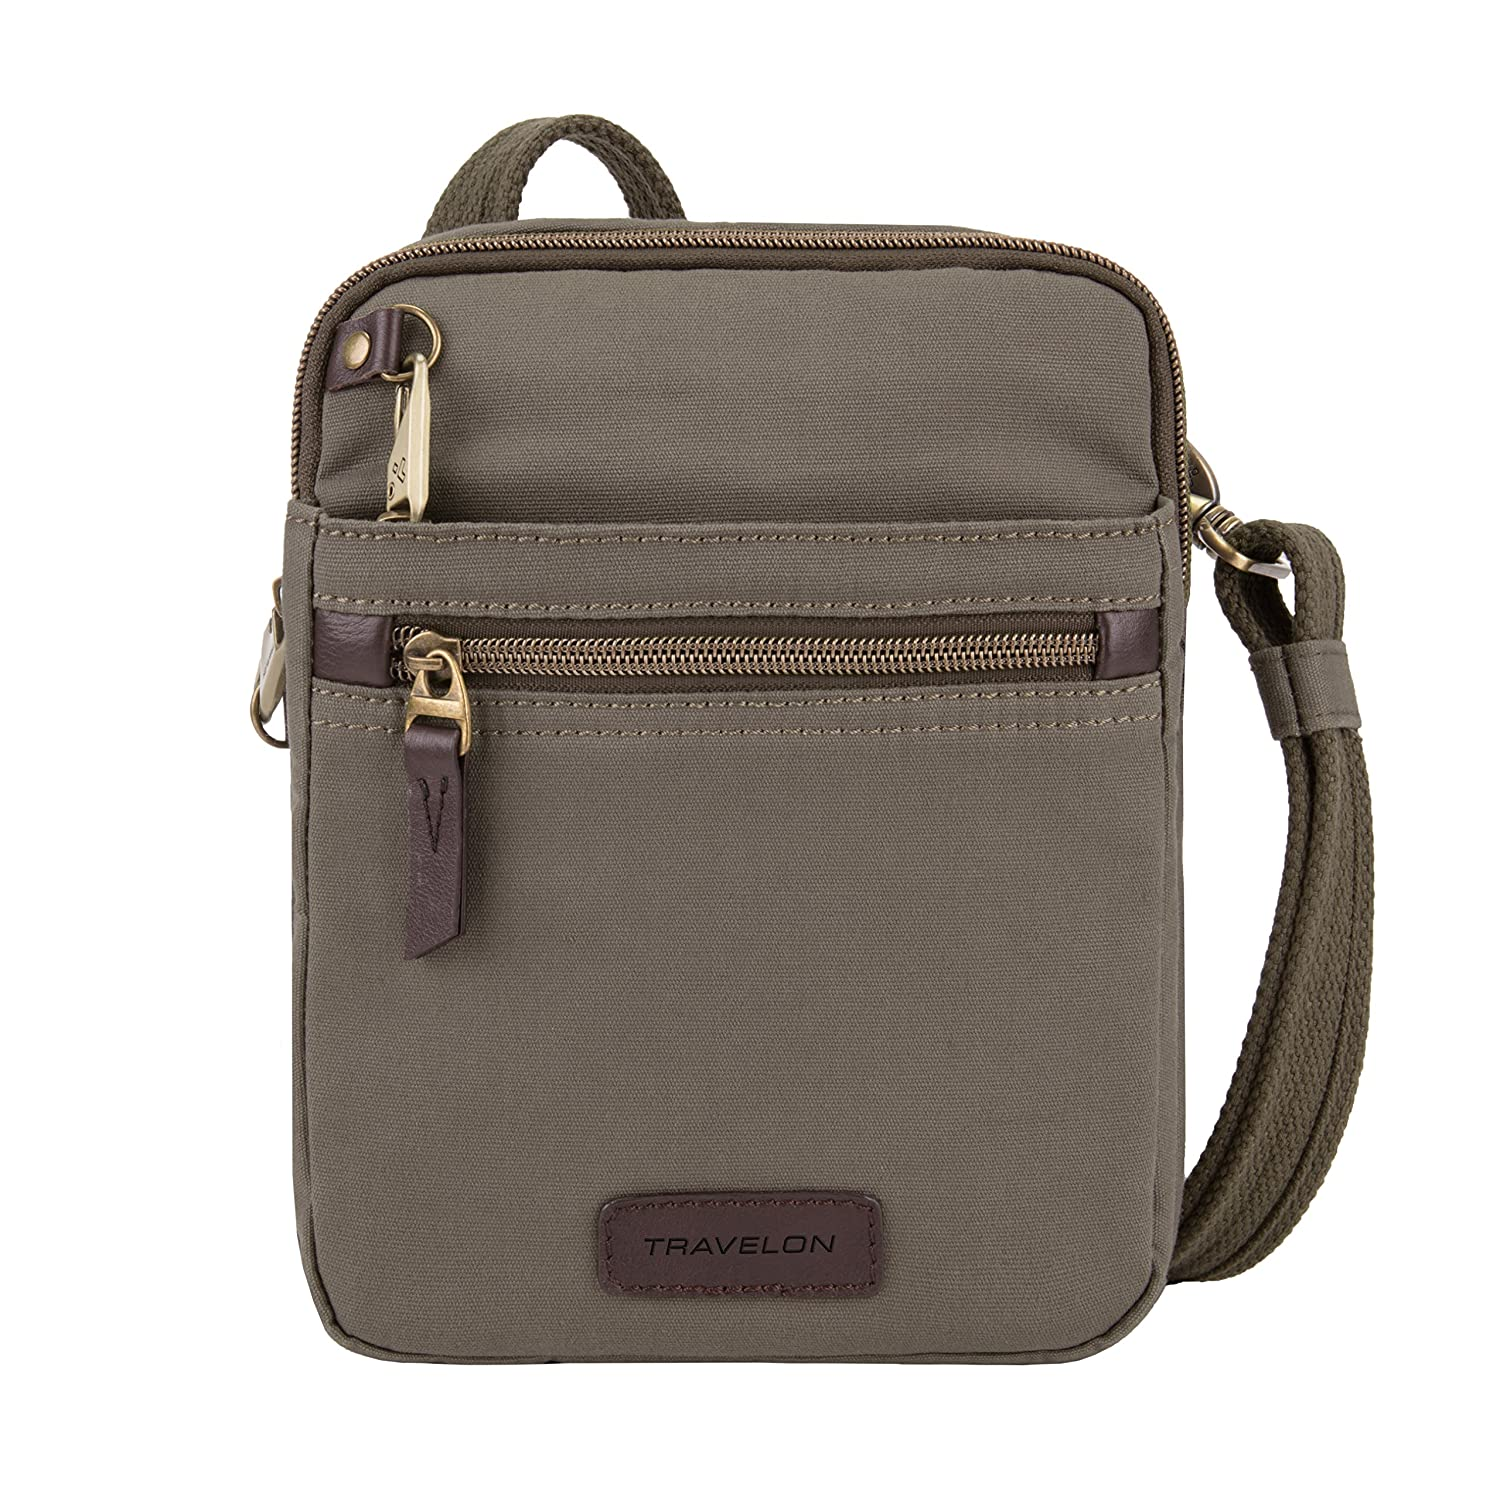 Travelon Anti-Theft Courier Small N s Slim Travel Bag – Stone Gray